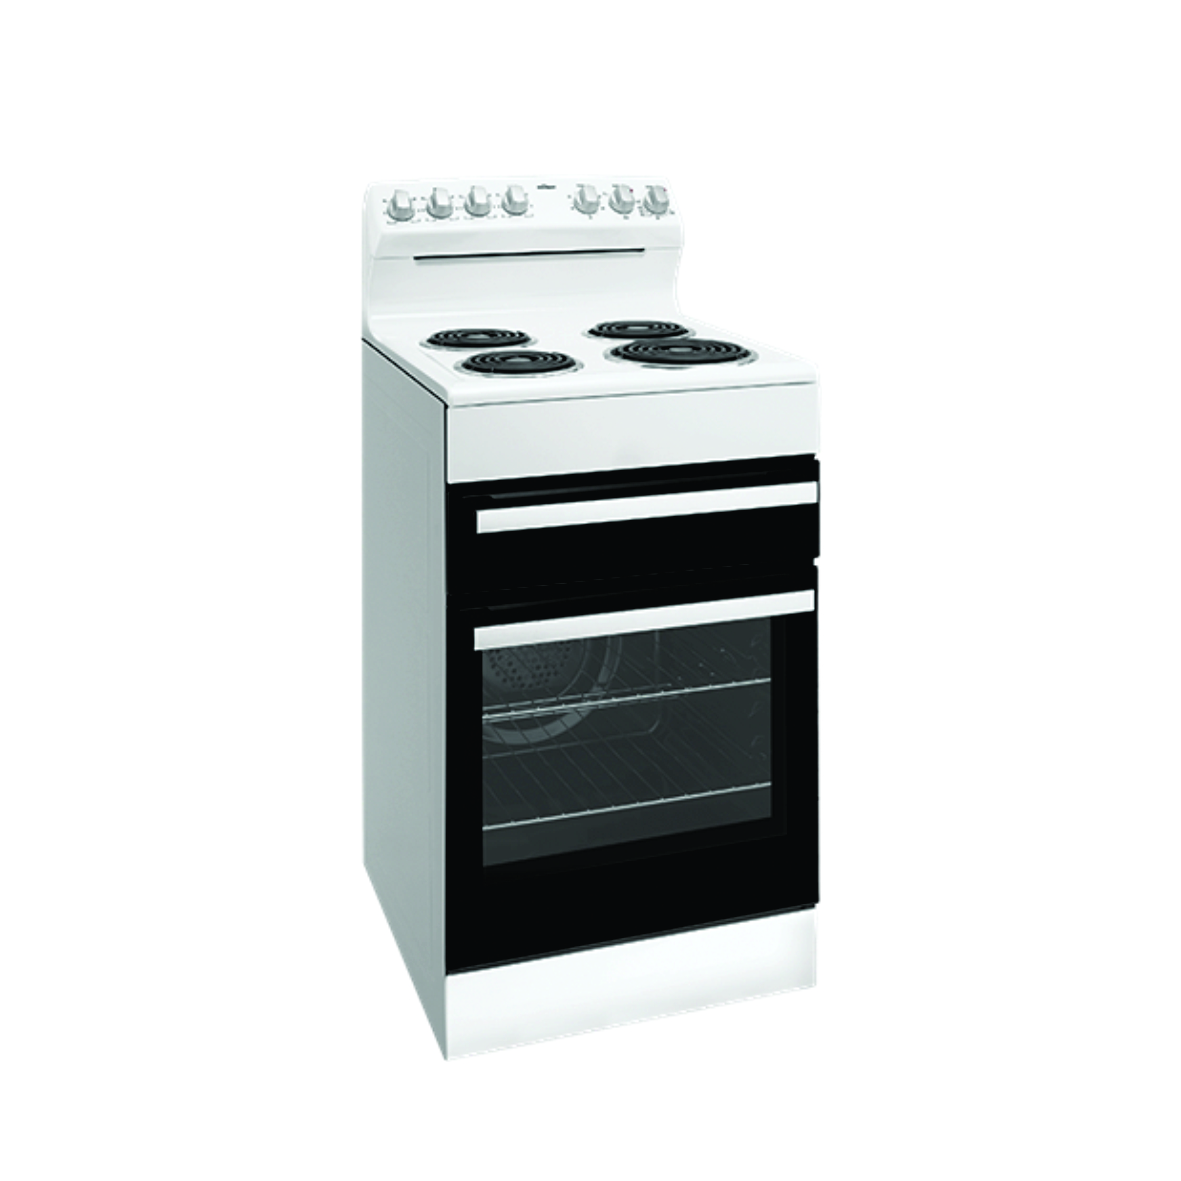 CHEF Freestanding Cooker